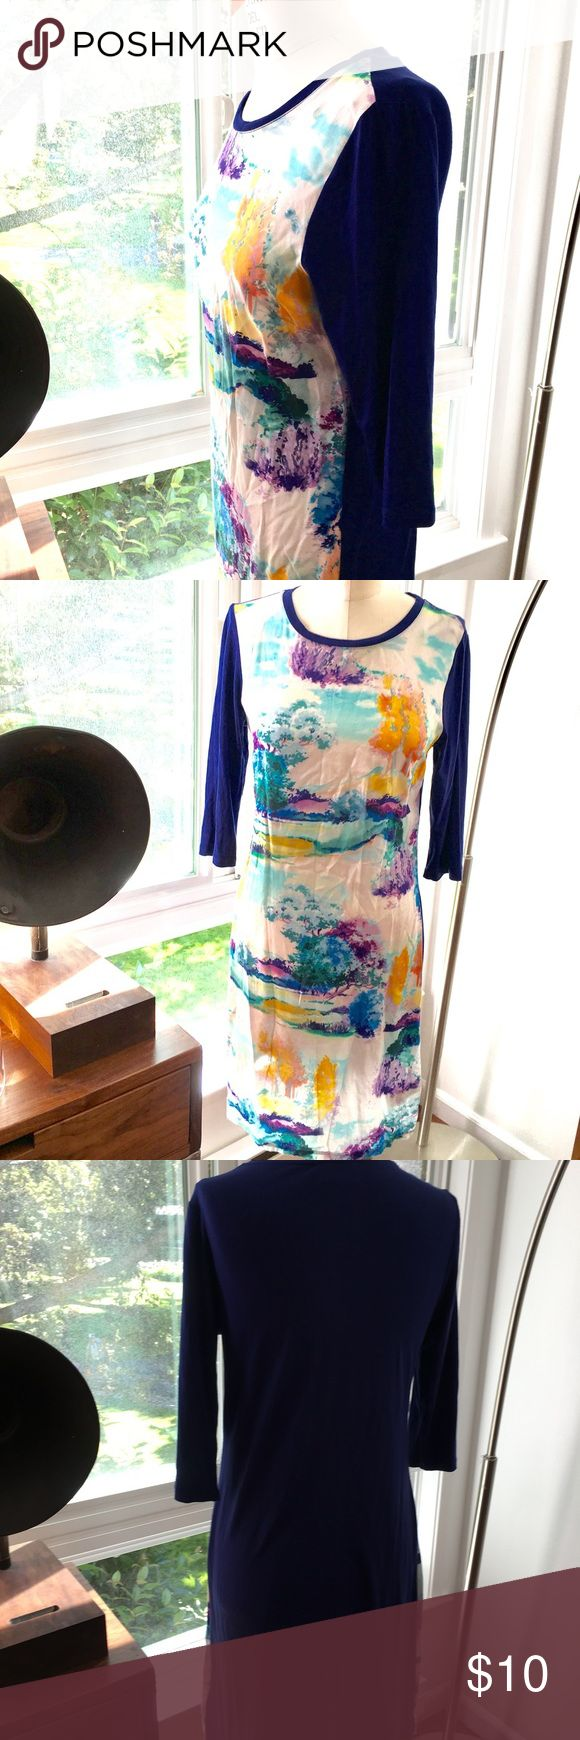 Oliver BONAS jersey dress water color size small Oliver BONAS jersey dress, this is a London based designer Oliver BONAS, the tag is in U.K. Sizing. Size 10 U.K. Is about size small or 2-4. Beautiful painted water color on the front and a pretty deep blue on the back. Oliver Bonas Dresses Midi